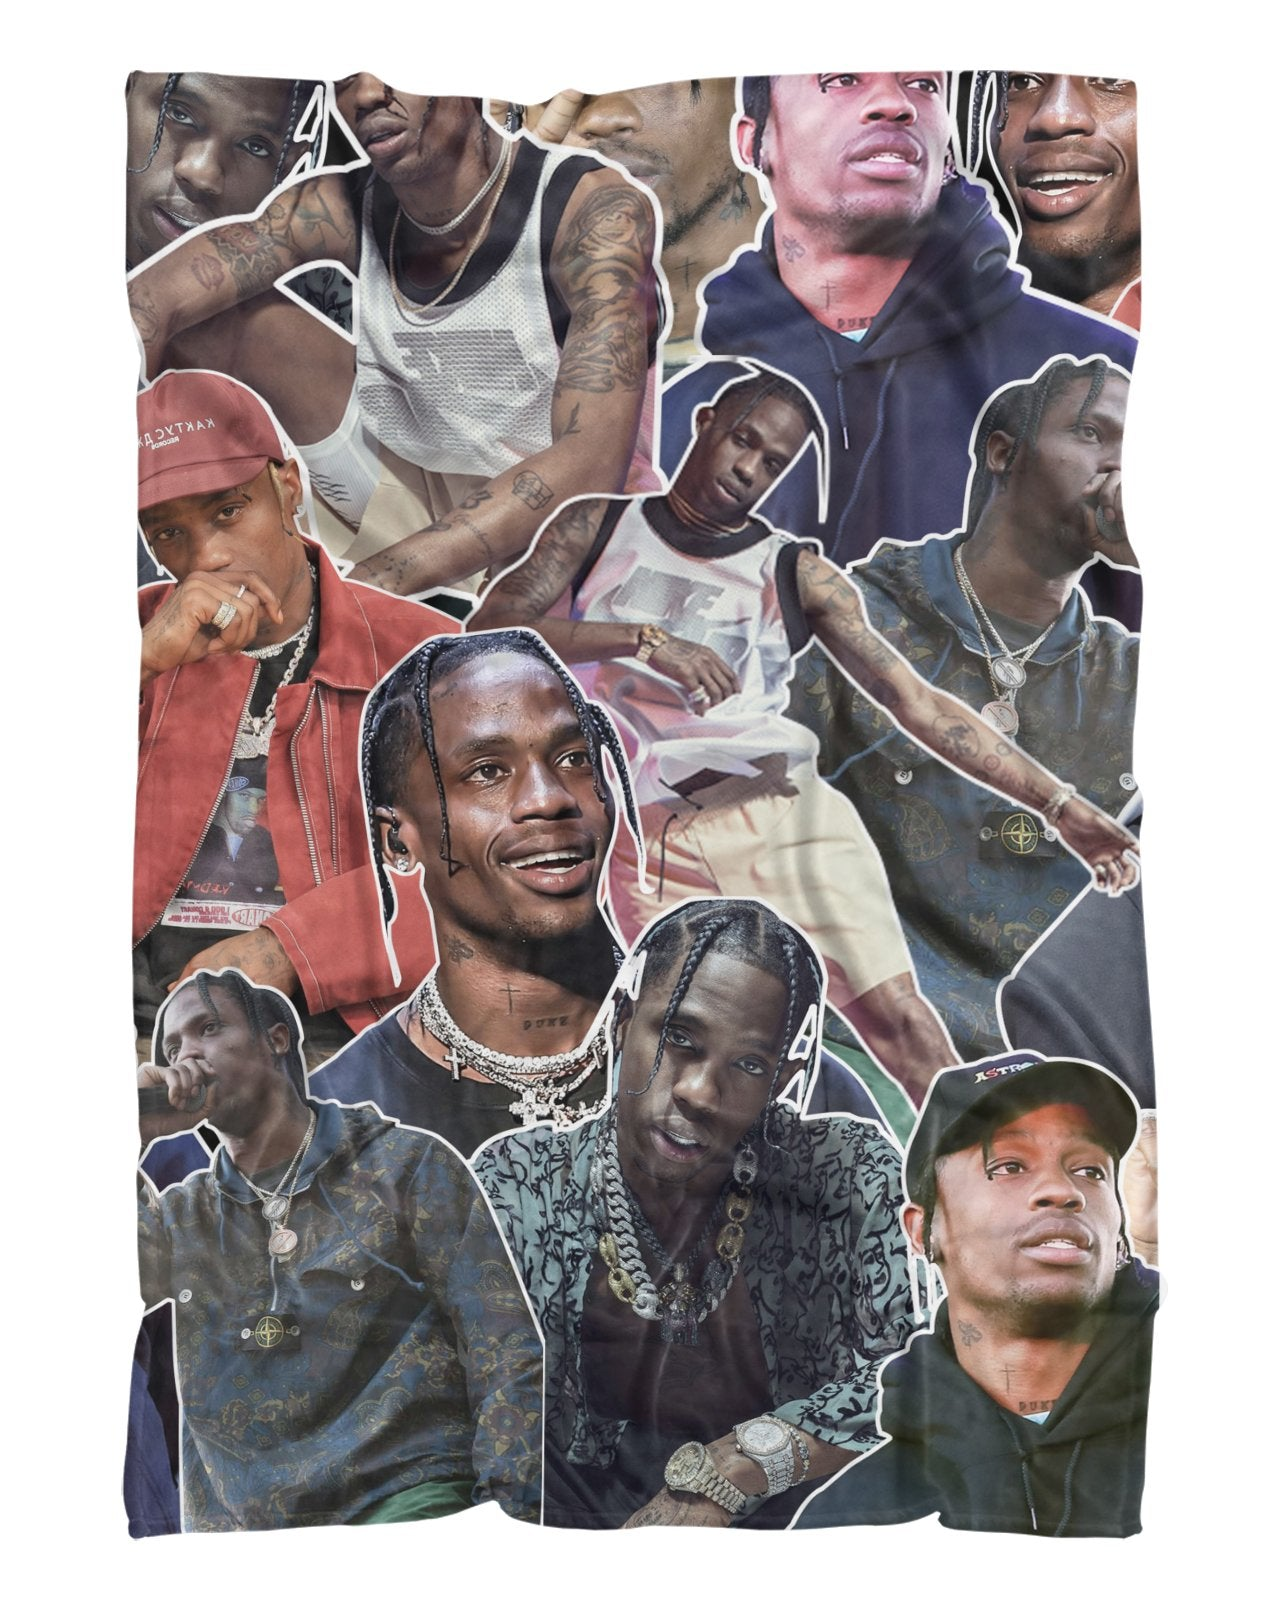 Travis Scott printed all over in HD on premium fabric. Handmade in California.